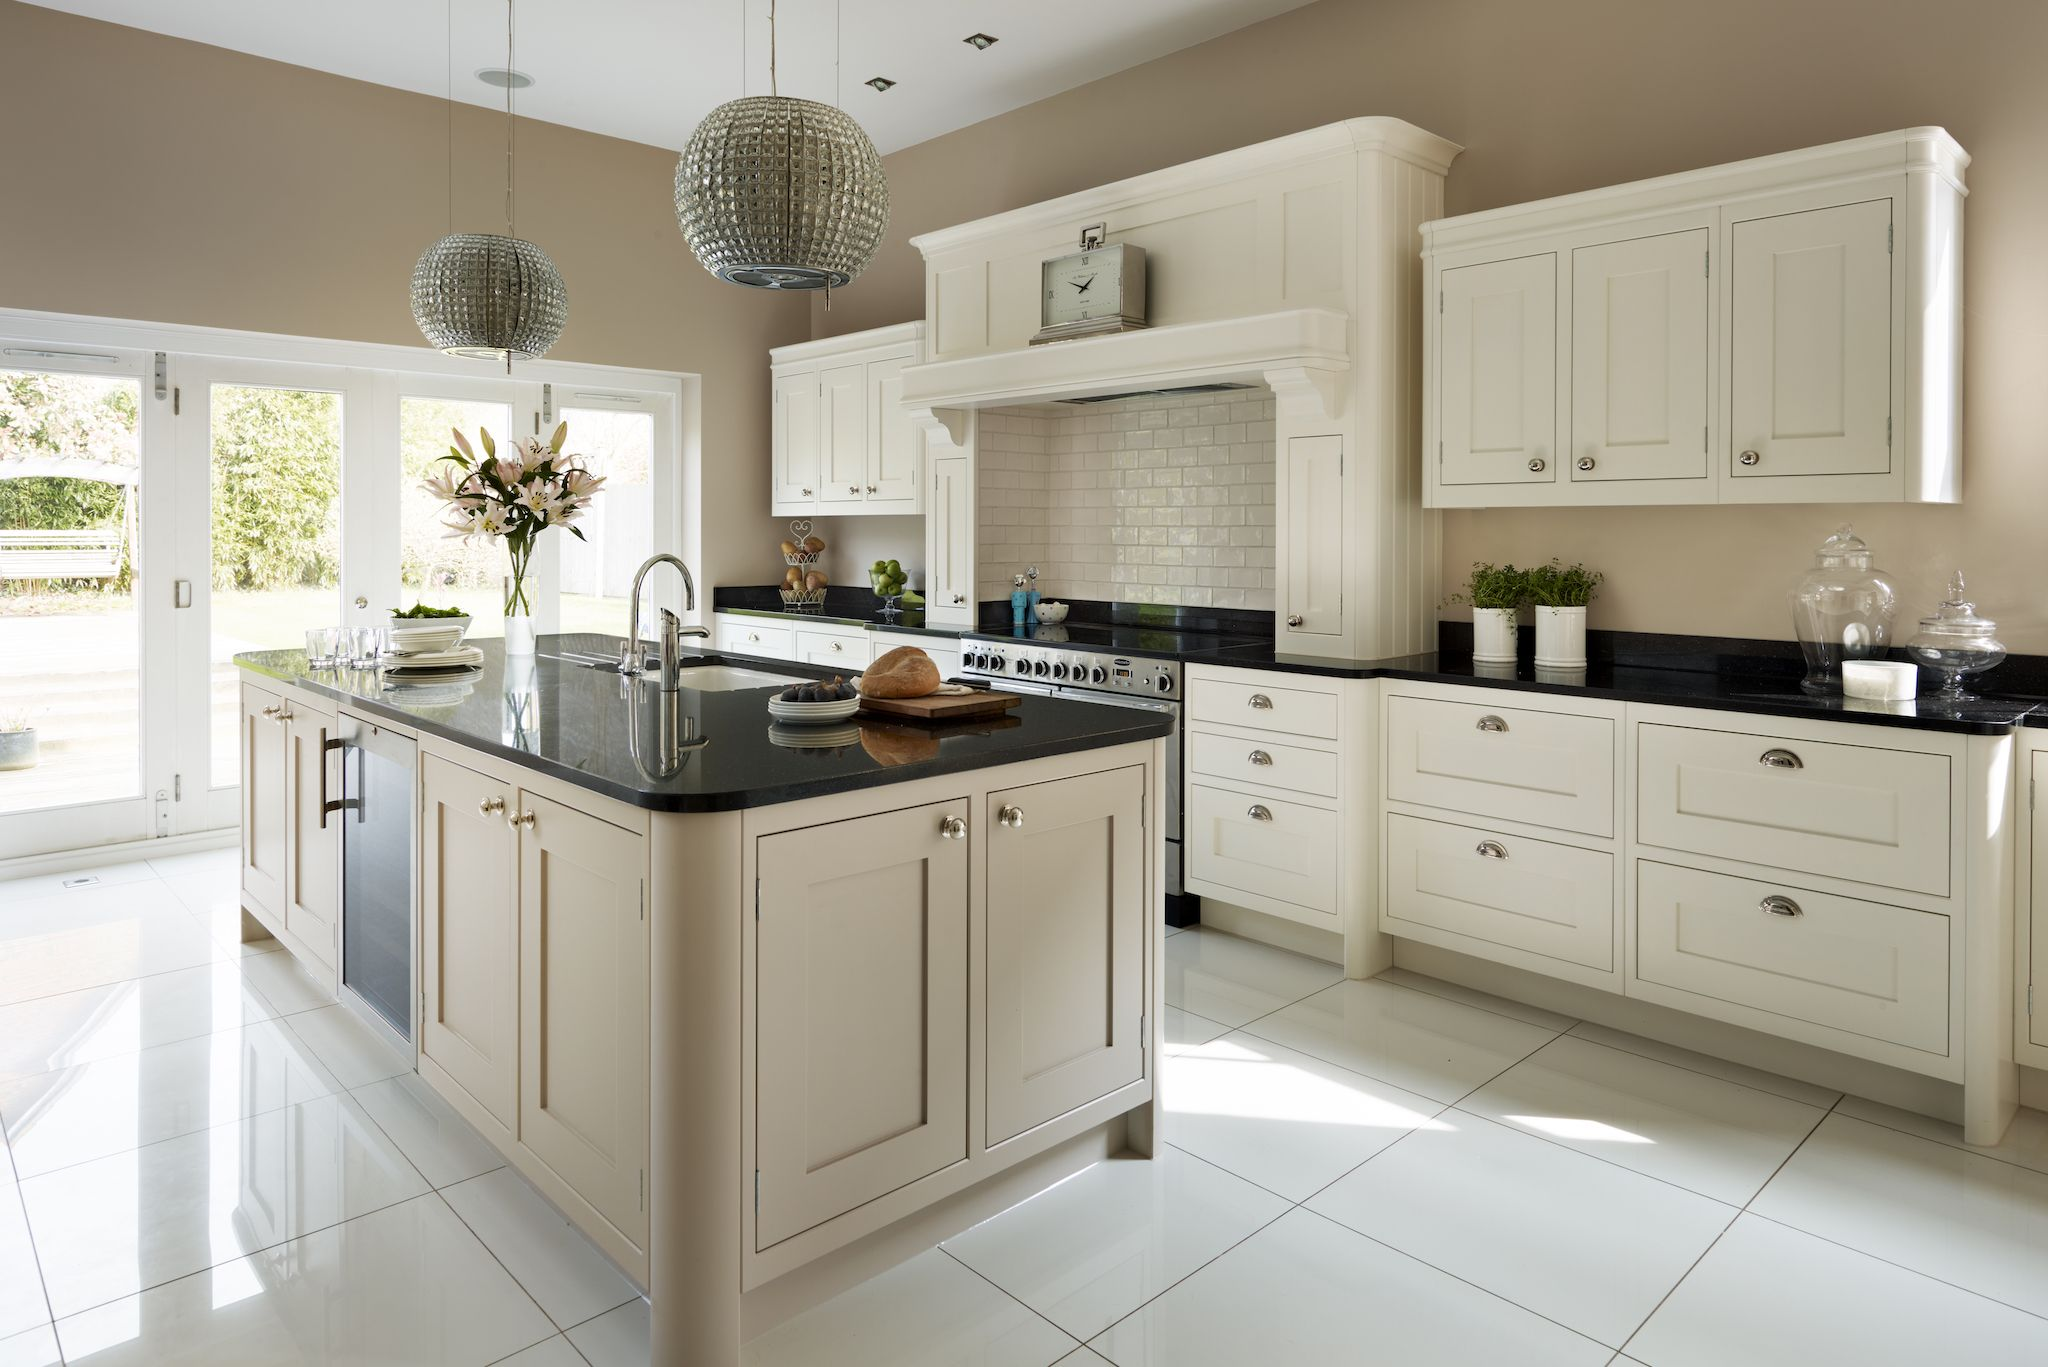 Solid Wood Shaker Style Kitchen | Davonport Kitchens in ...